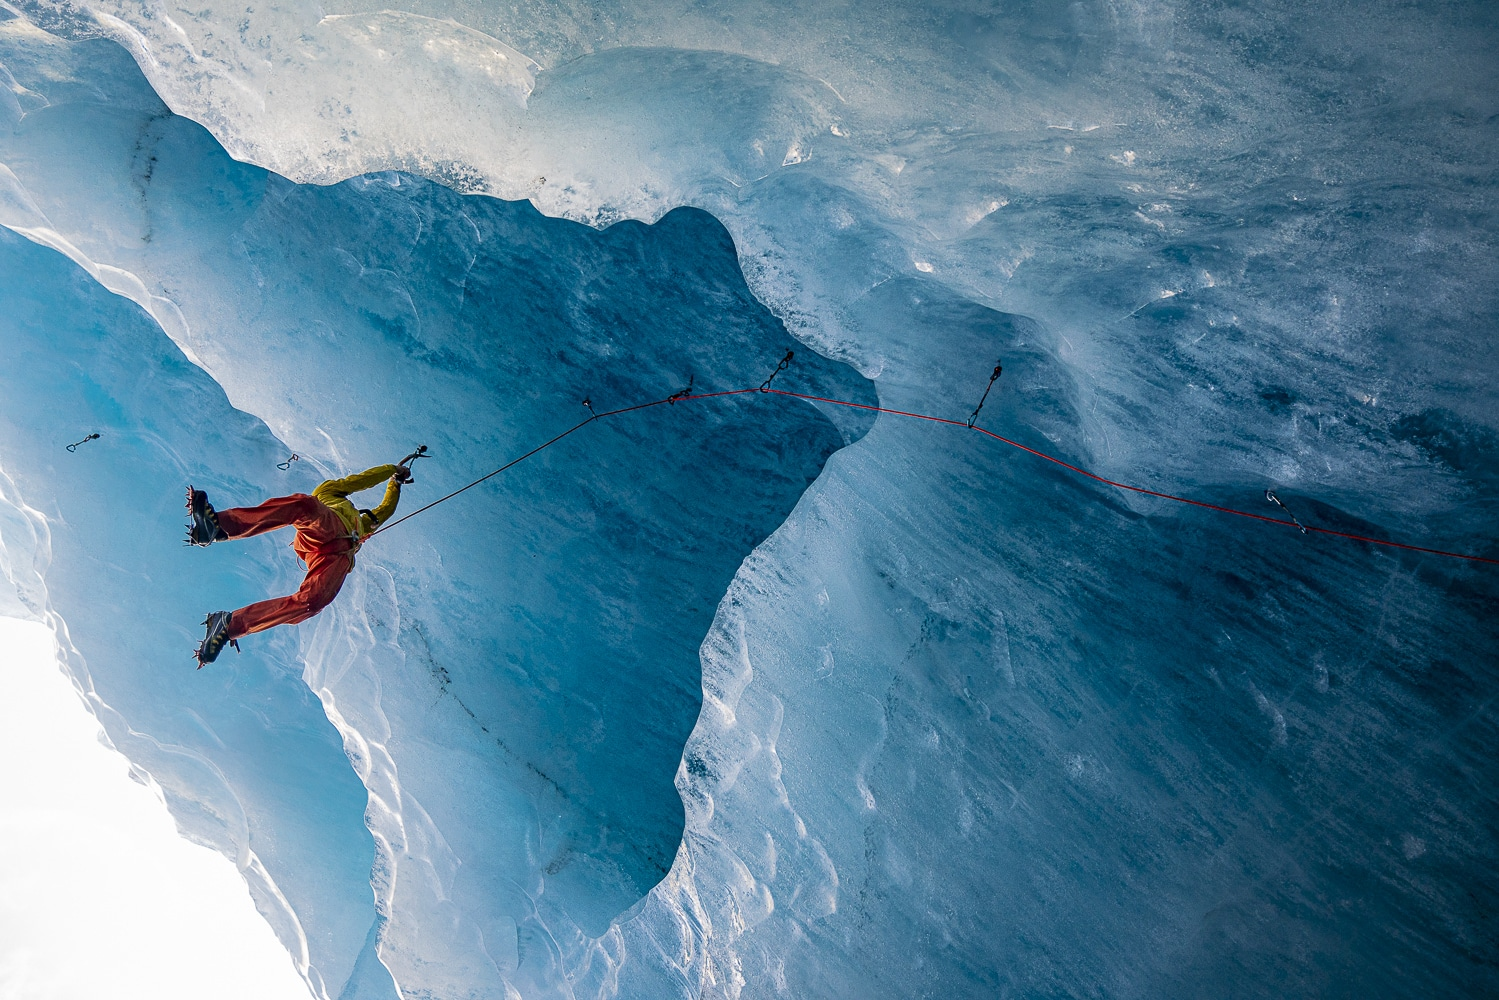 Jeff Mercier climbing in an ice cave.